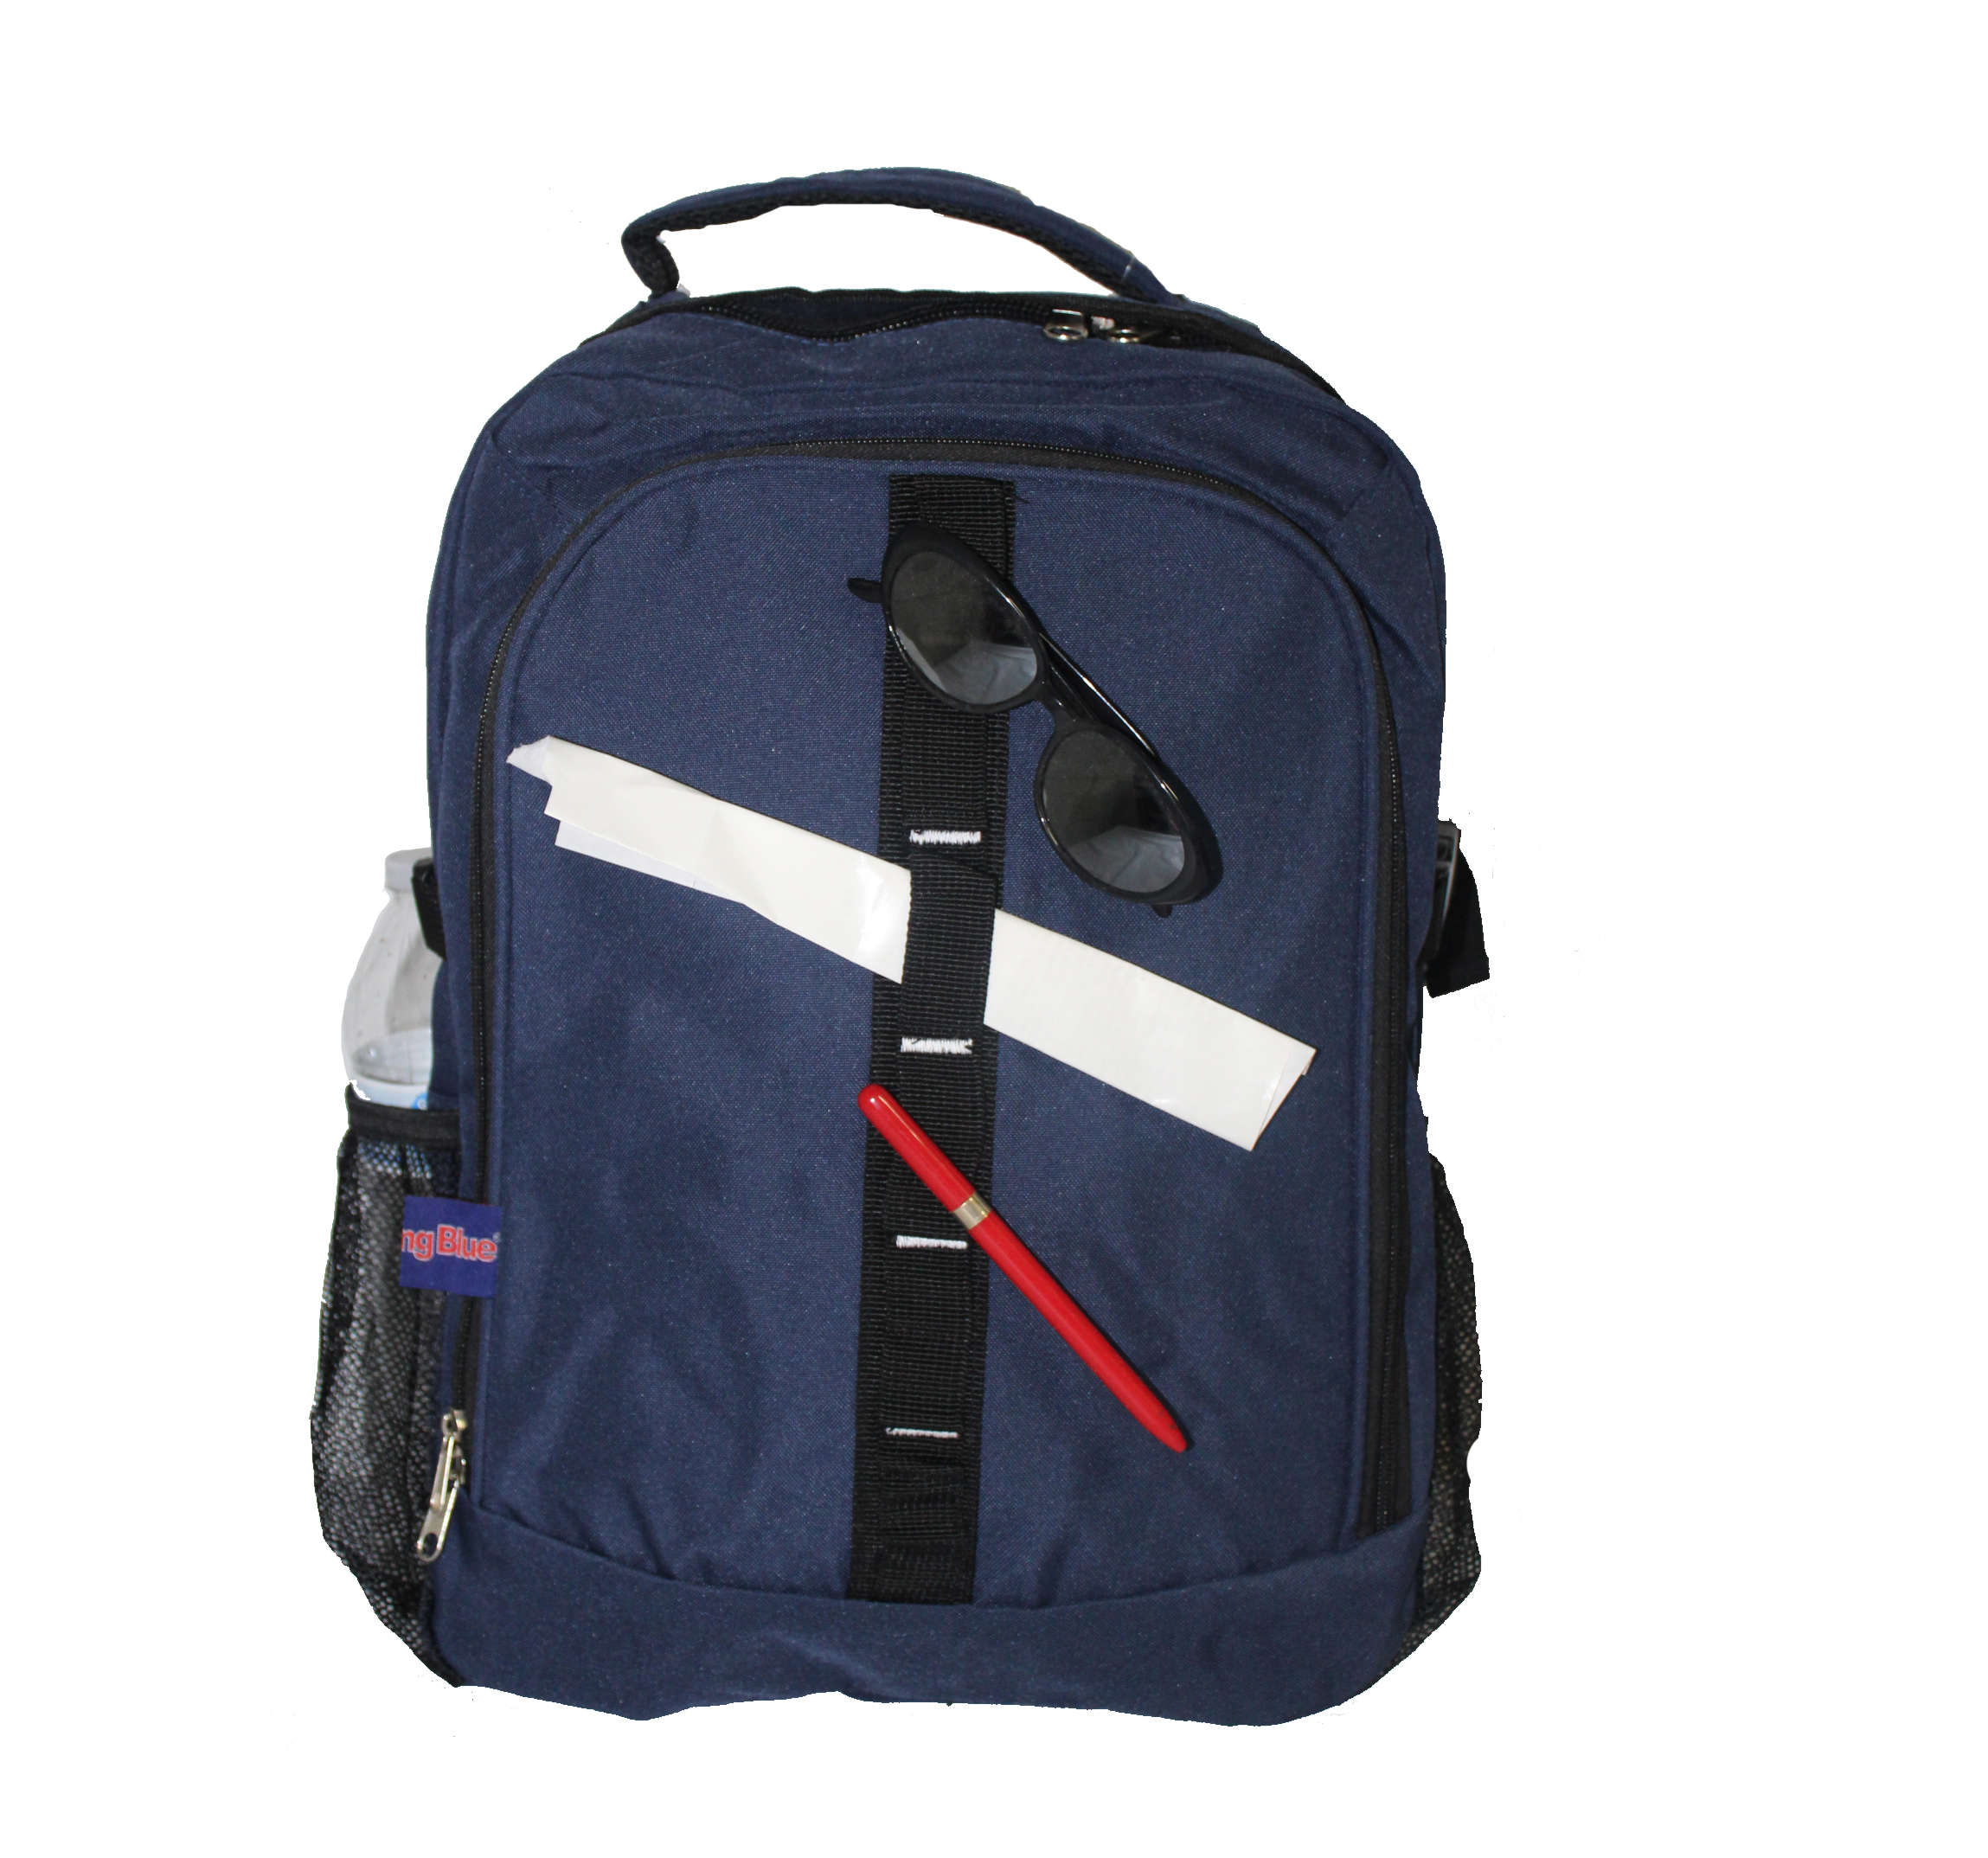 navy Spirit American Airlines Personal Item Under Seat Basic Luggage BoardingBlue 18 Frontier